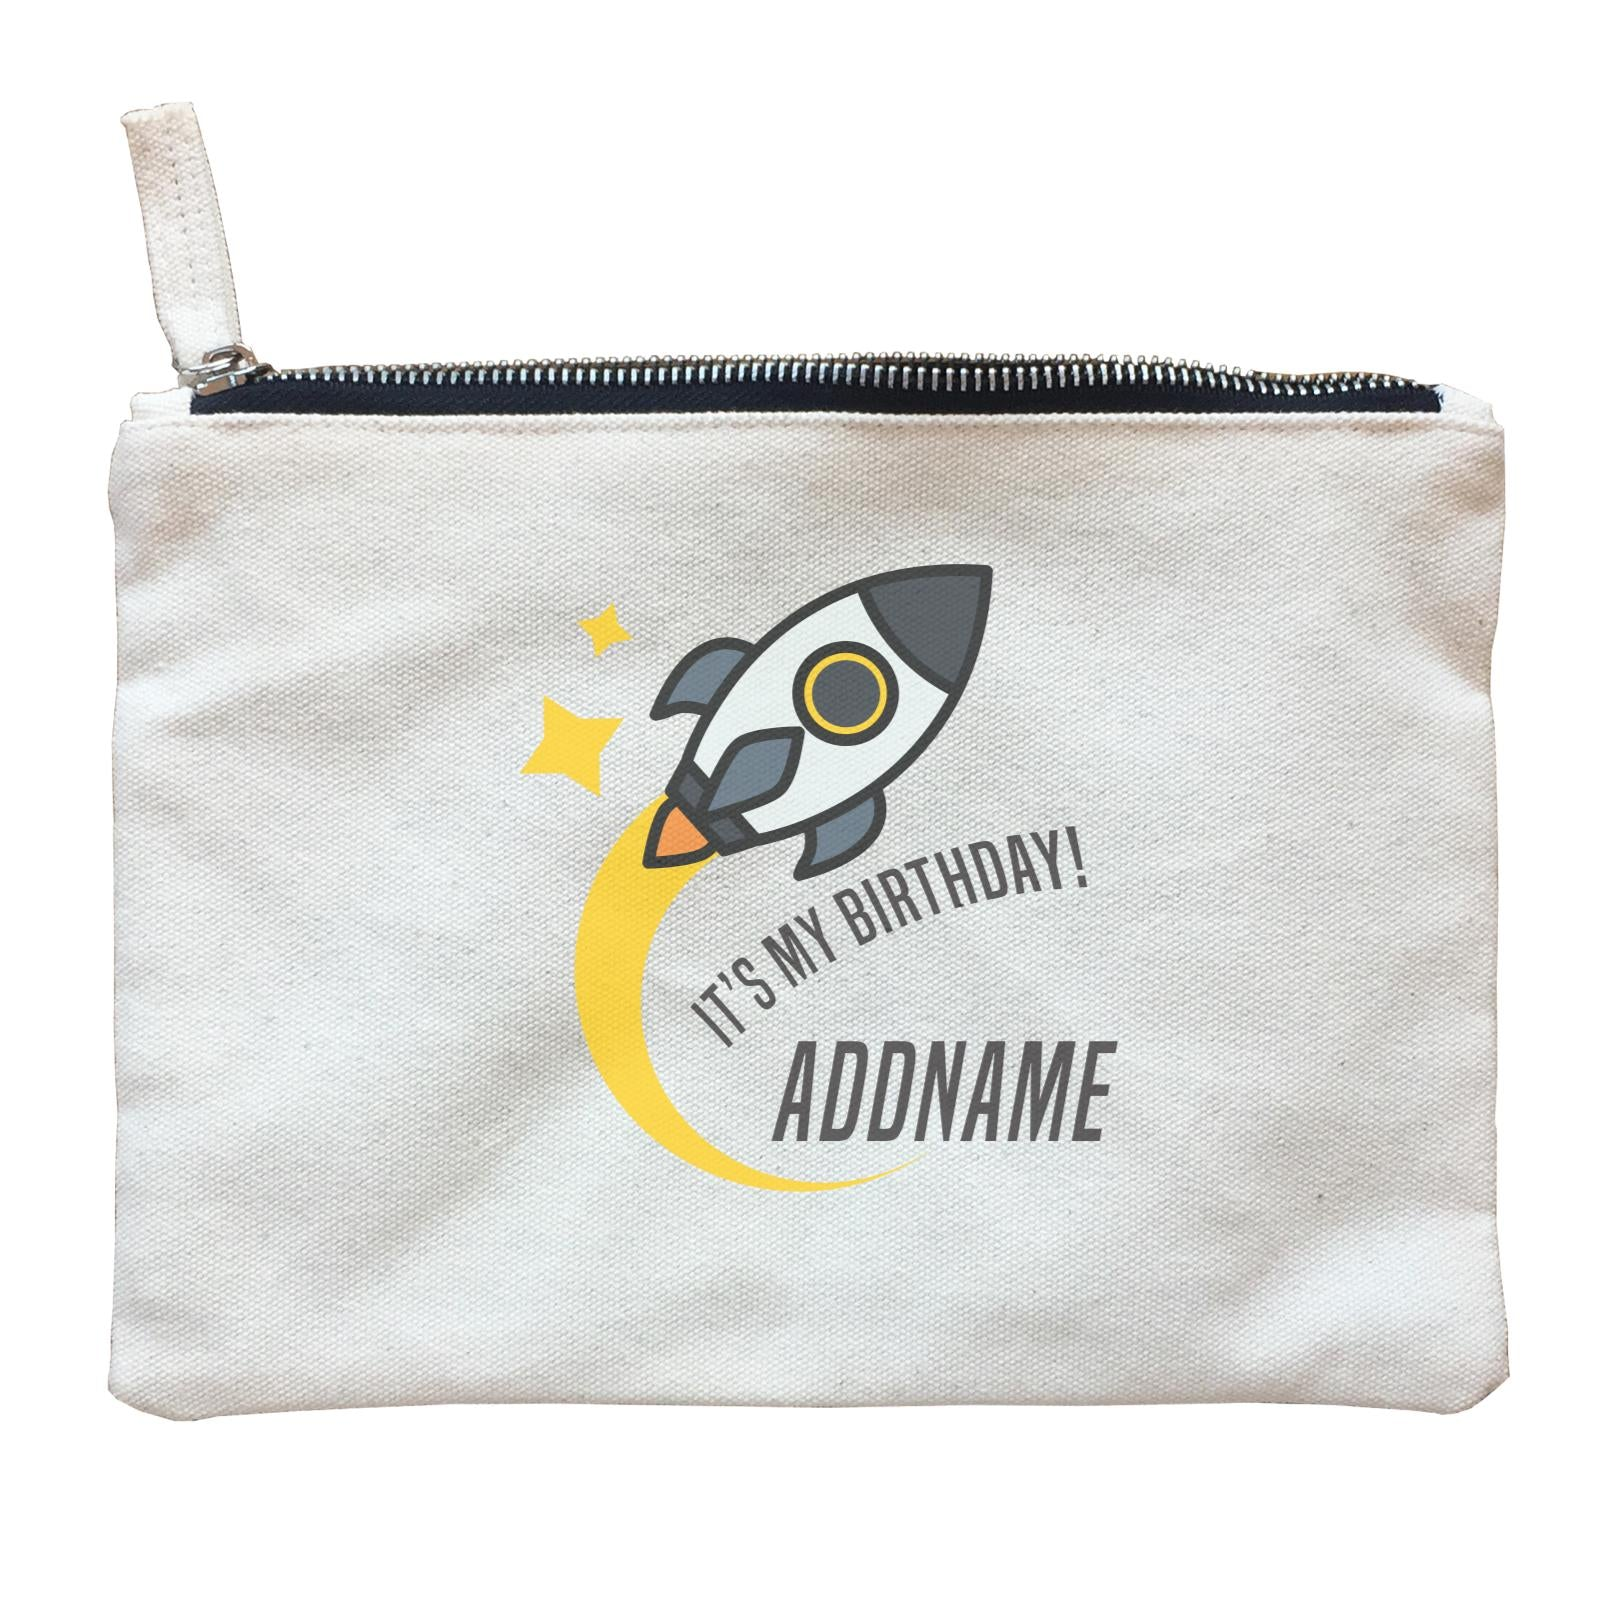 Birthday Flying Rocket To Galaxy It's My Birthday Addname Zipper Pouch